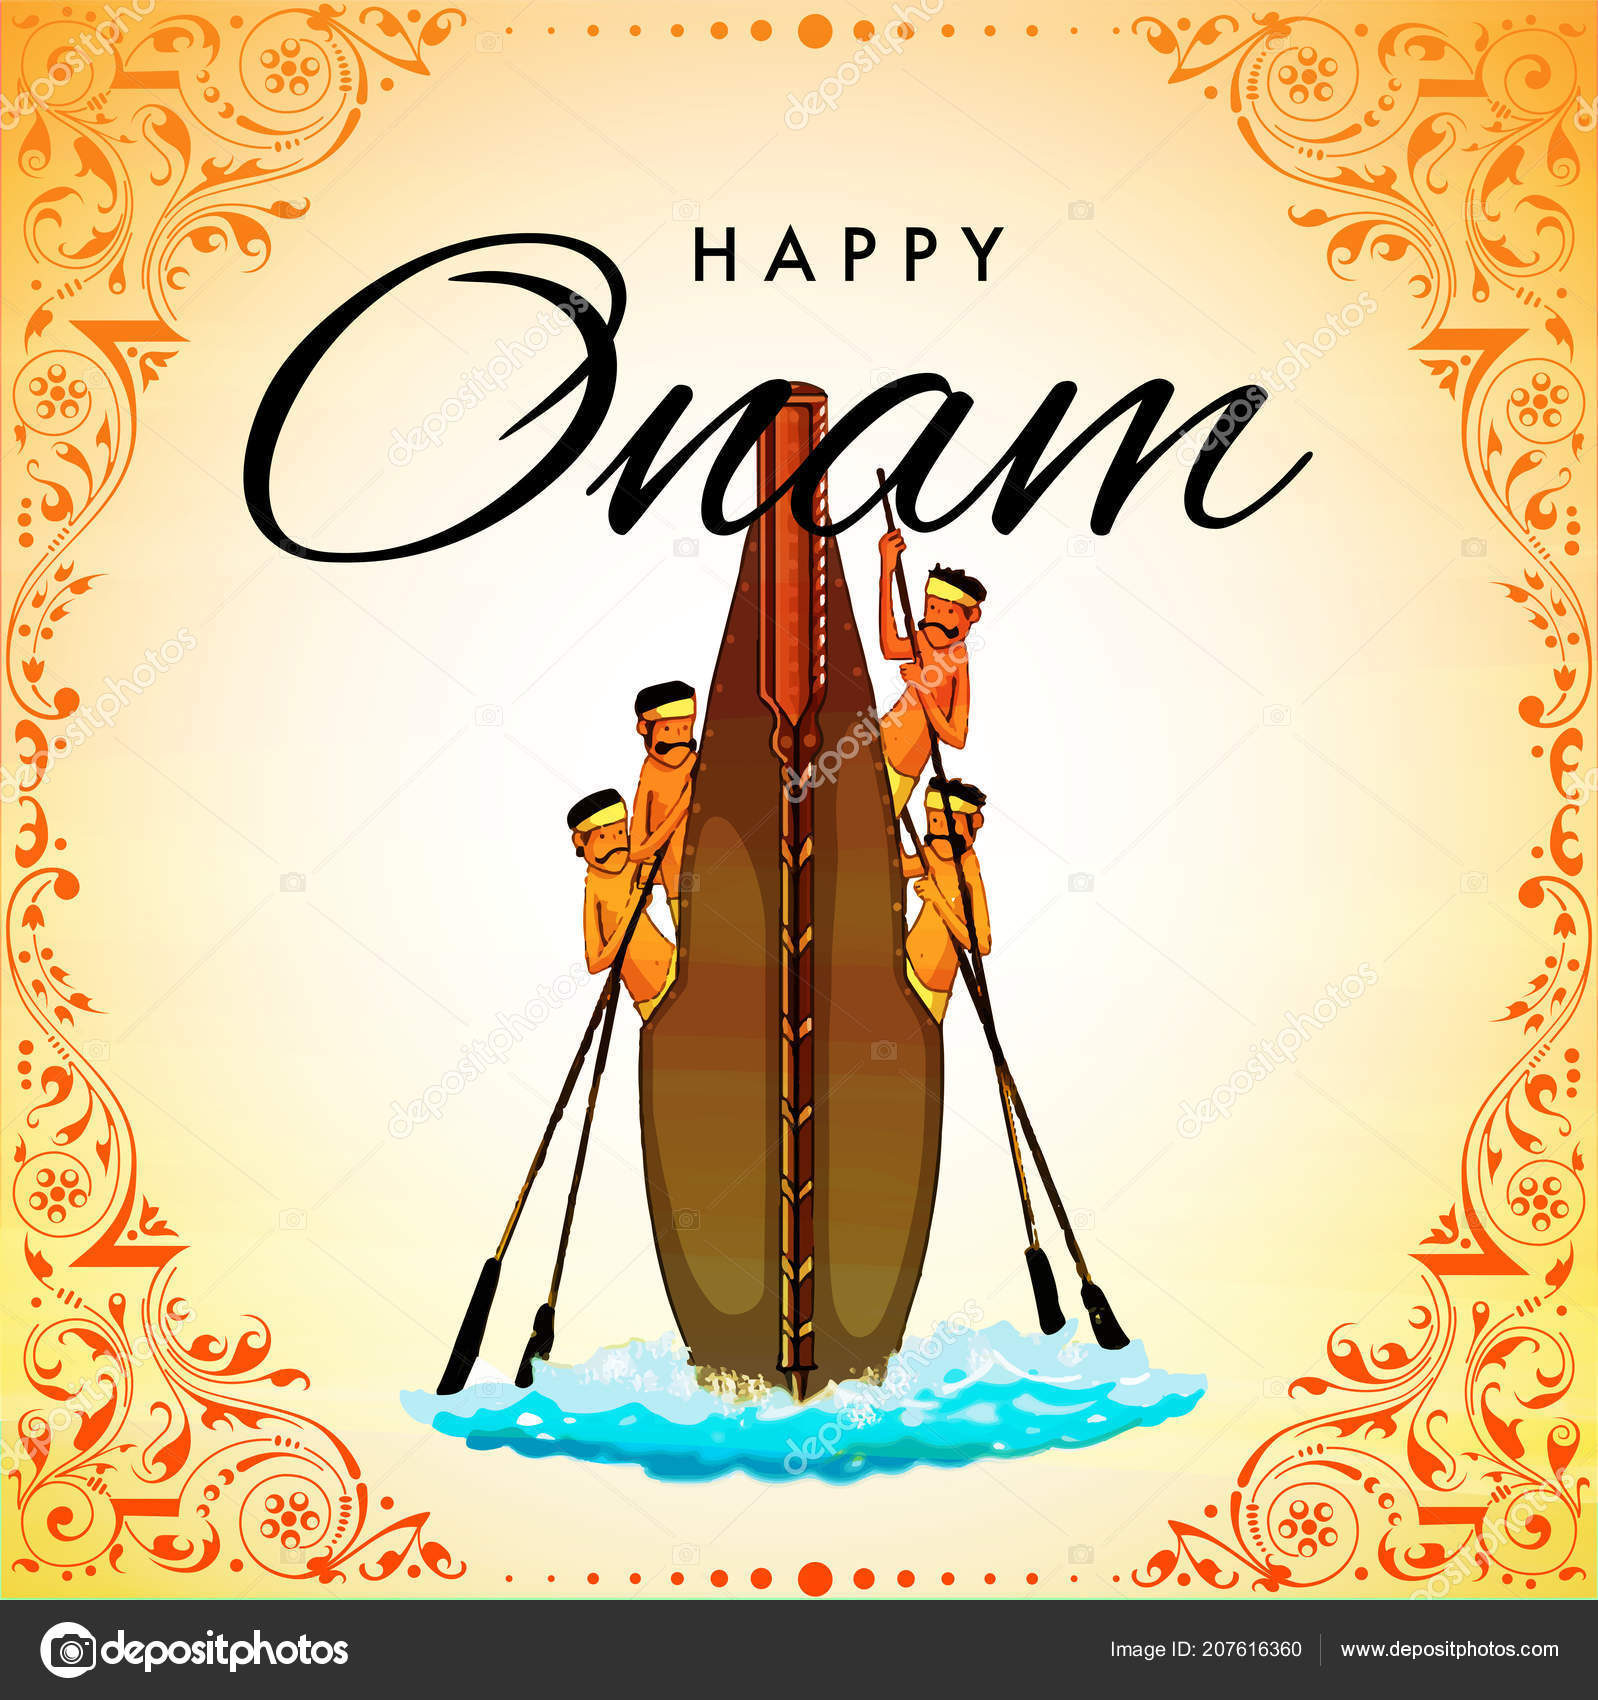 Beautiful Greeting Card Design Onam Festival Celebration